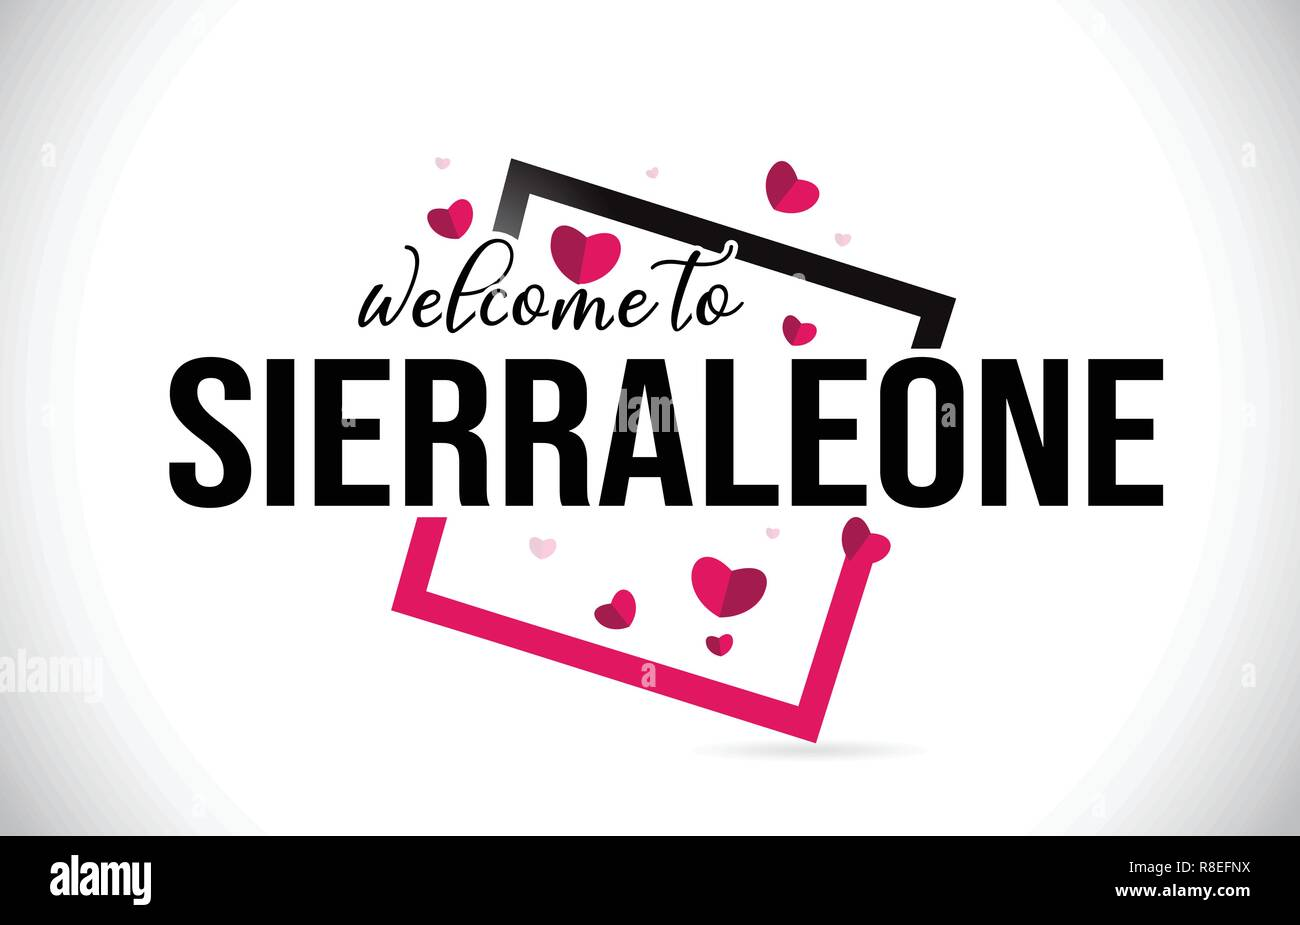 SierraLeone Welcome To Word Text with Handwritten Font and  Red Hearts Square Design Illustration Vector. - Stock Image